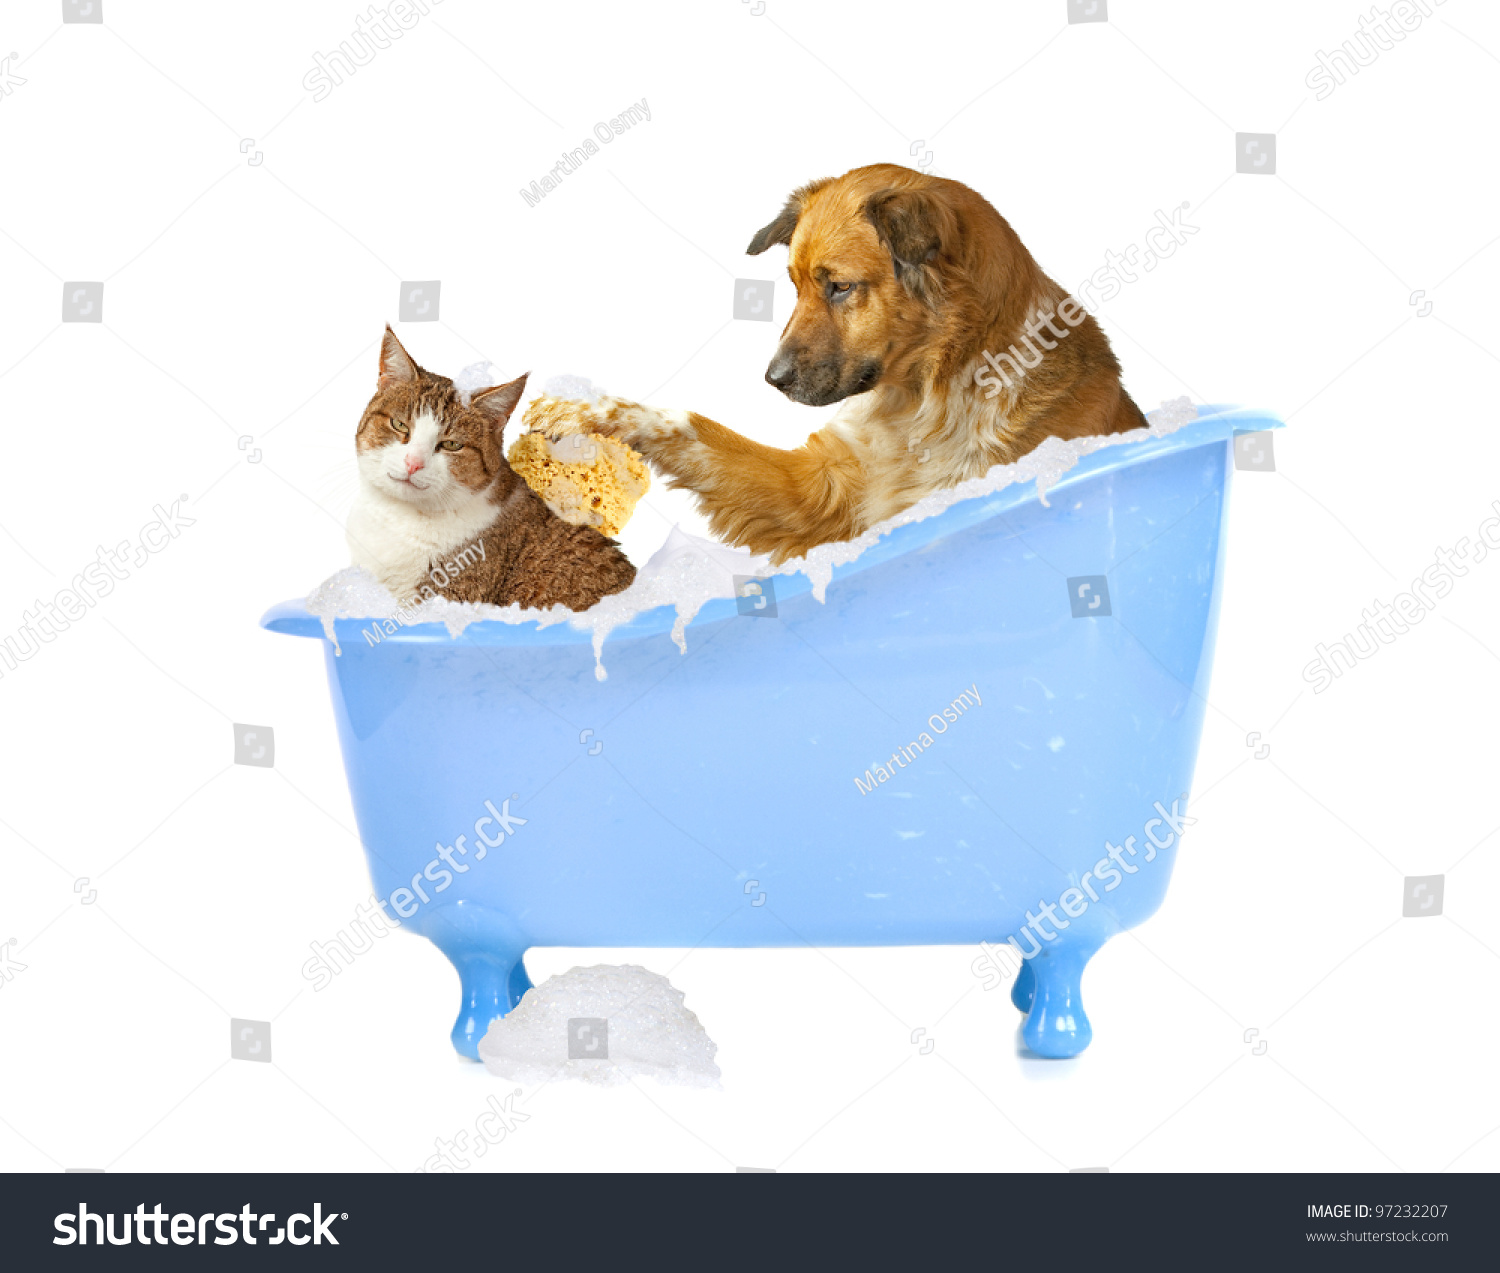 Cats And Dogs Available   But Not Downloading